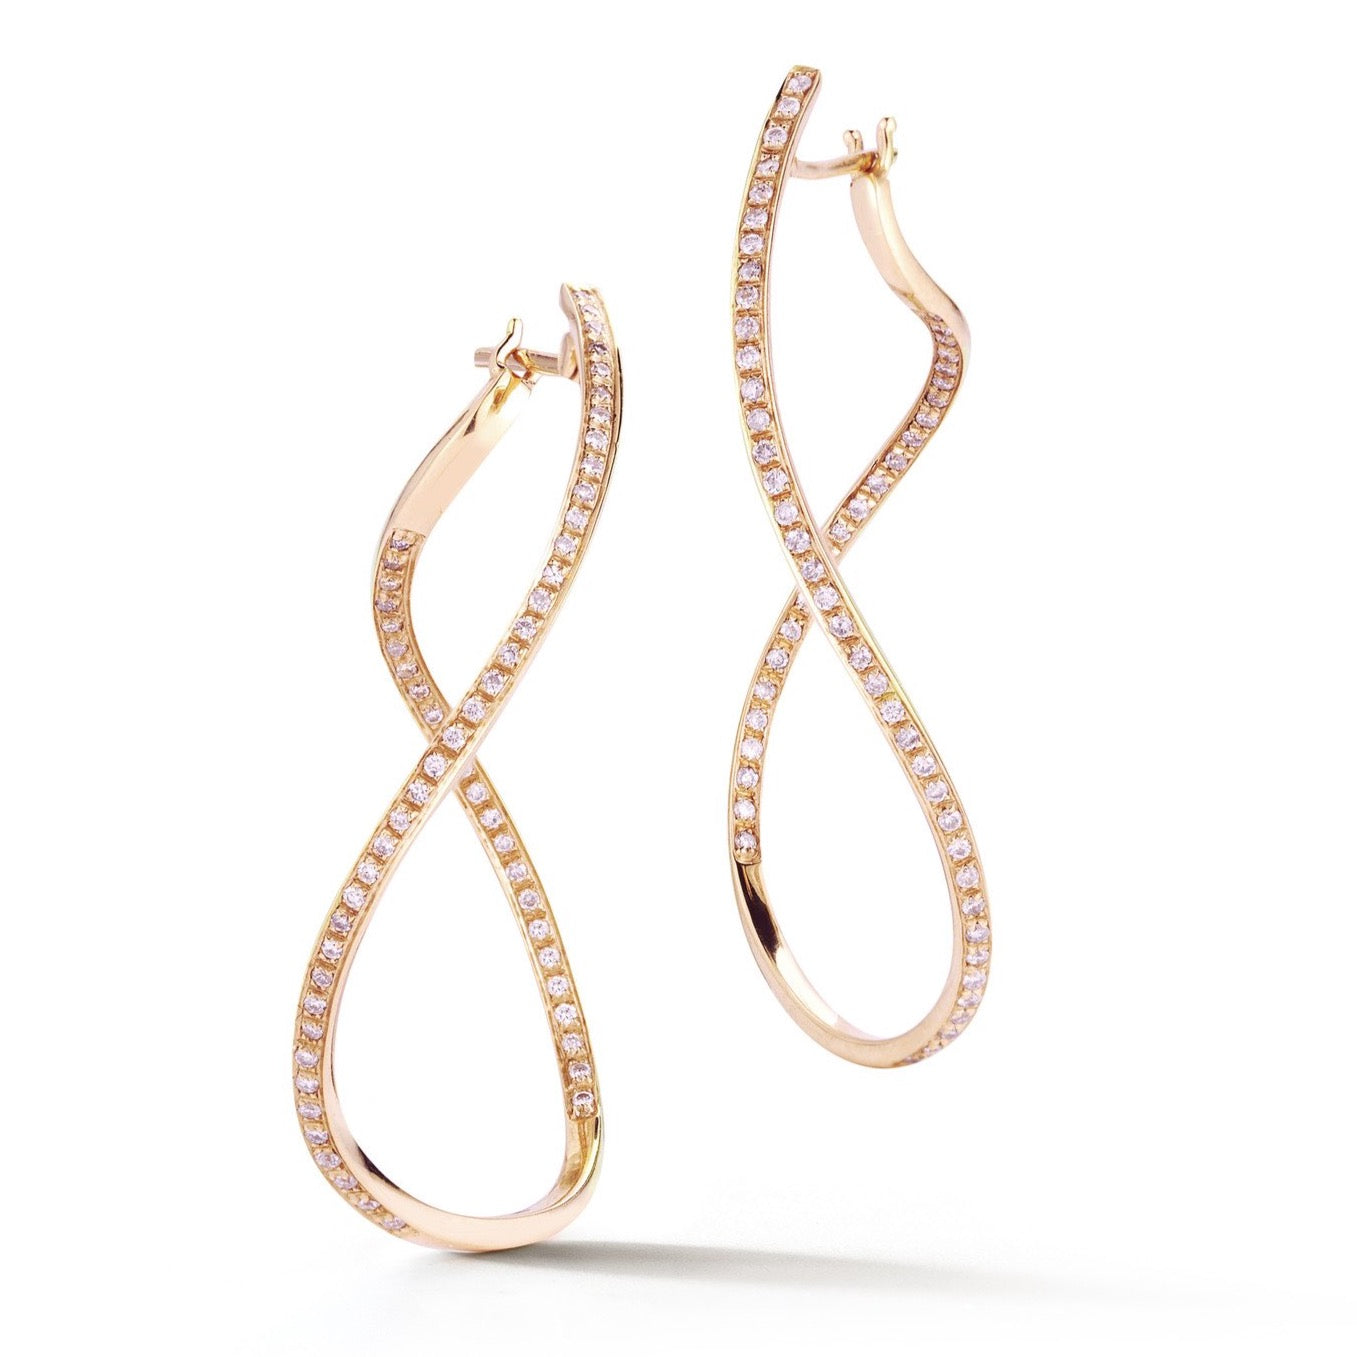 A-FURST-AQUA-HOOP-EARRINGS-DIAMONDS-ROSE-GOLD-O0105R1